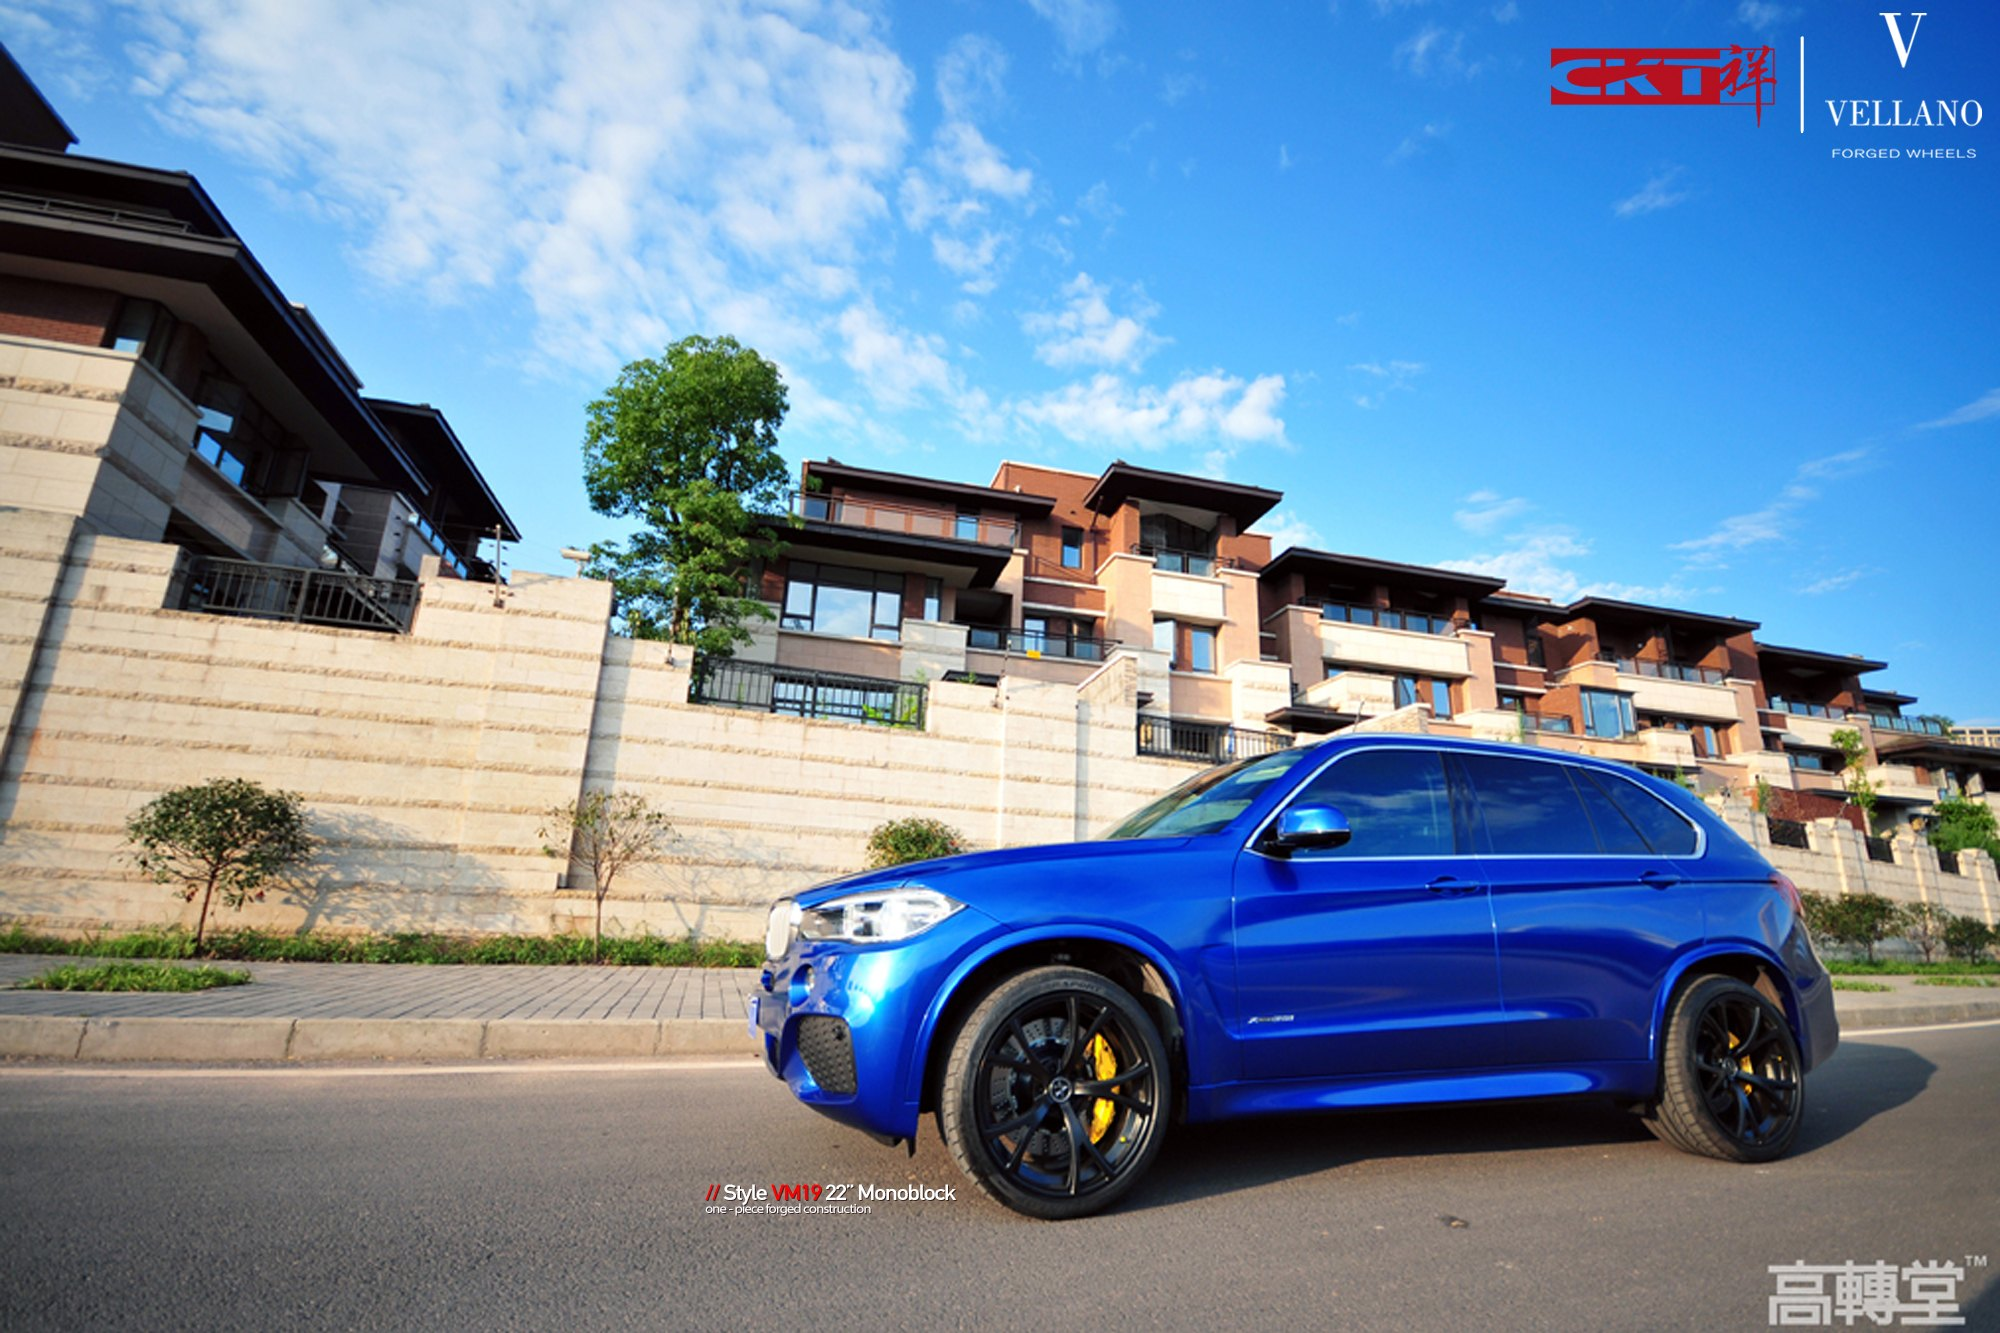 Blue Bmw X5 With Aftermarket Side Skirts Photo By Vellano